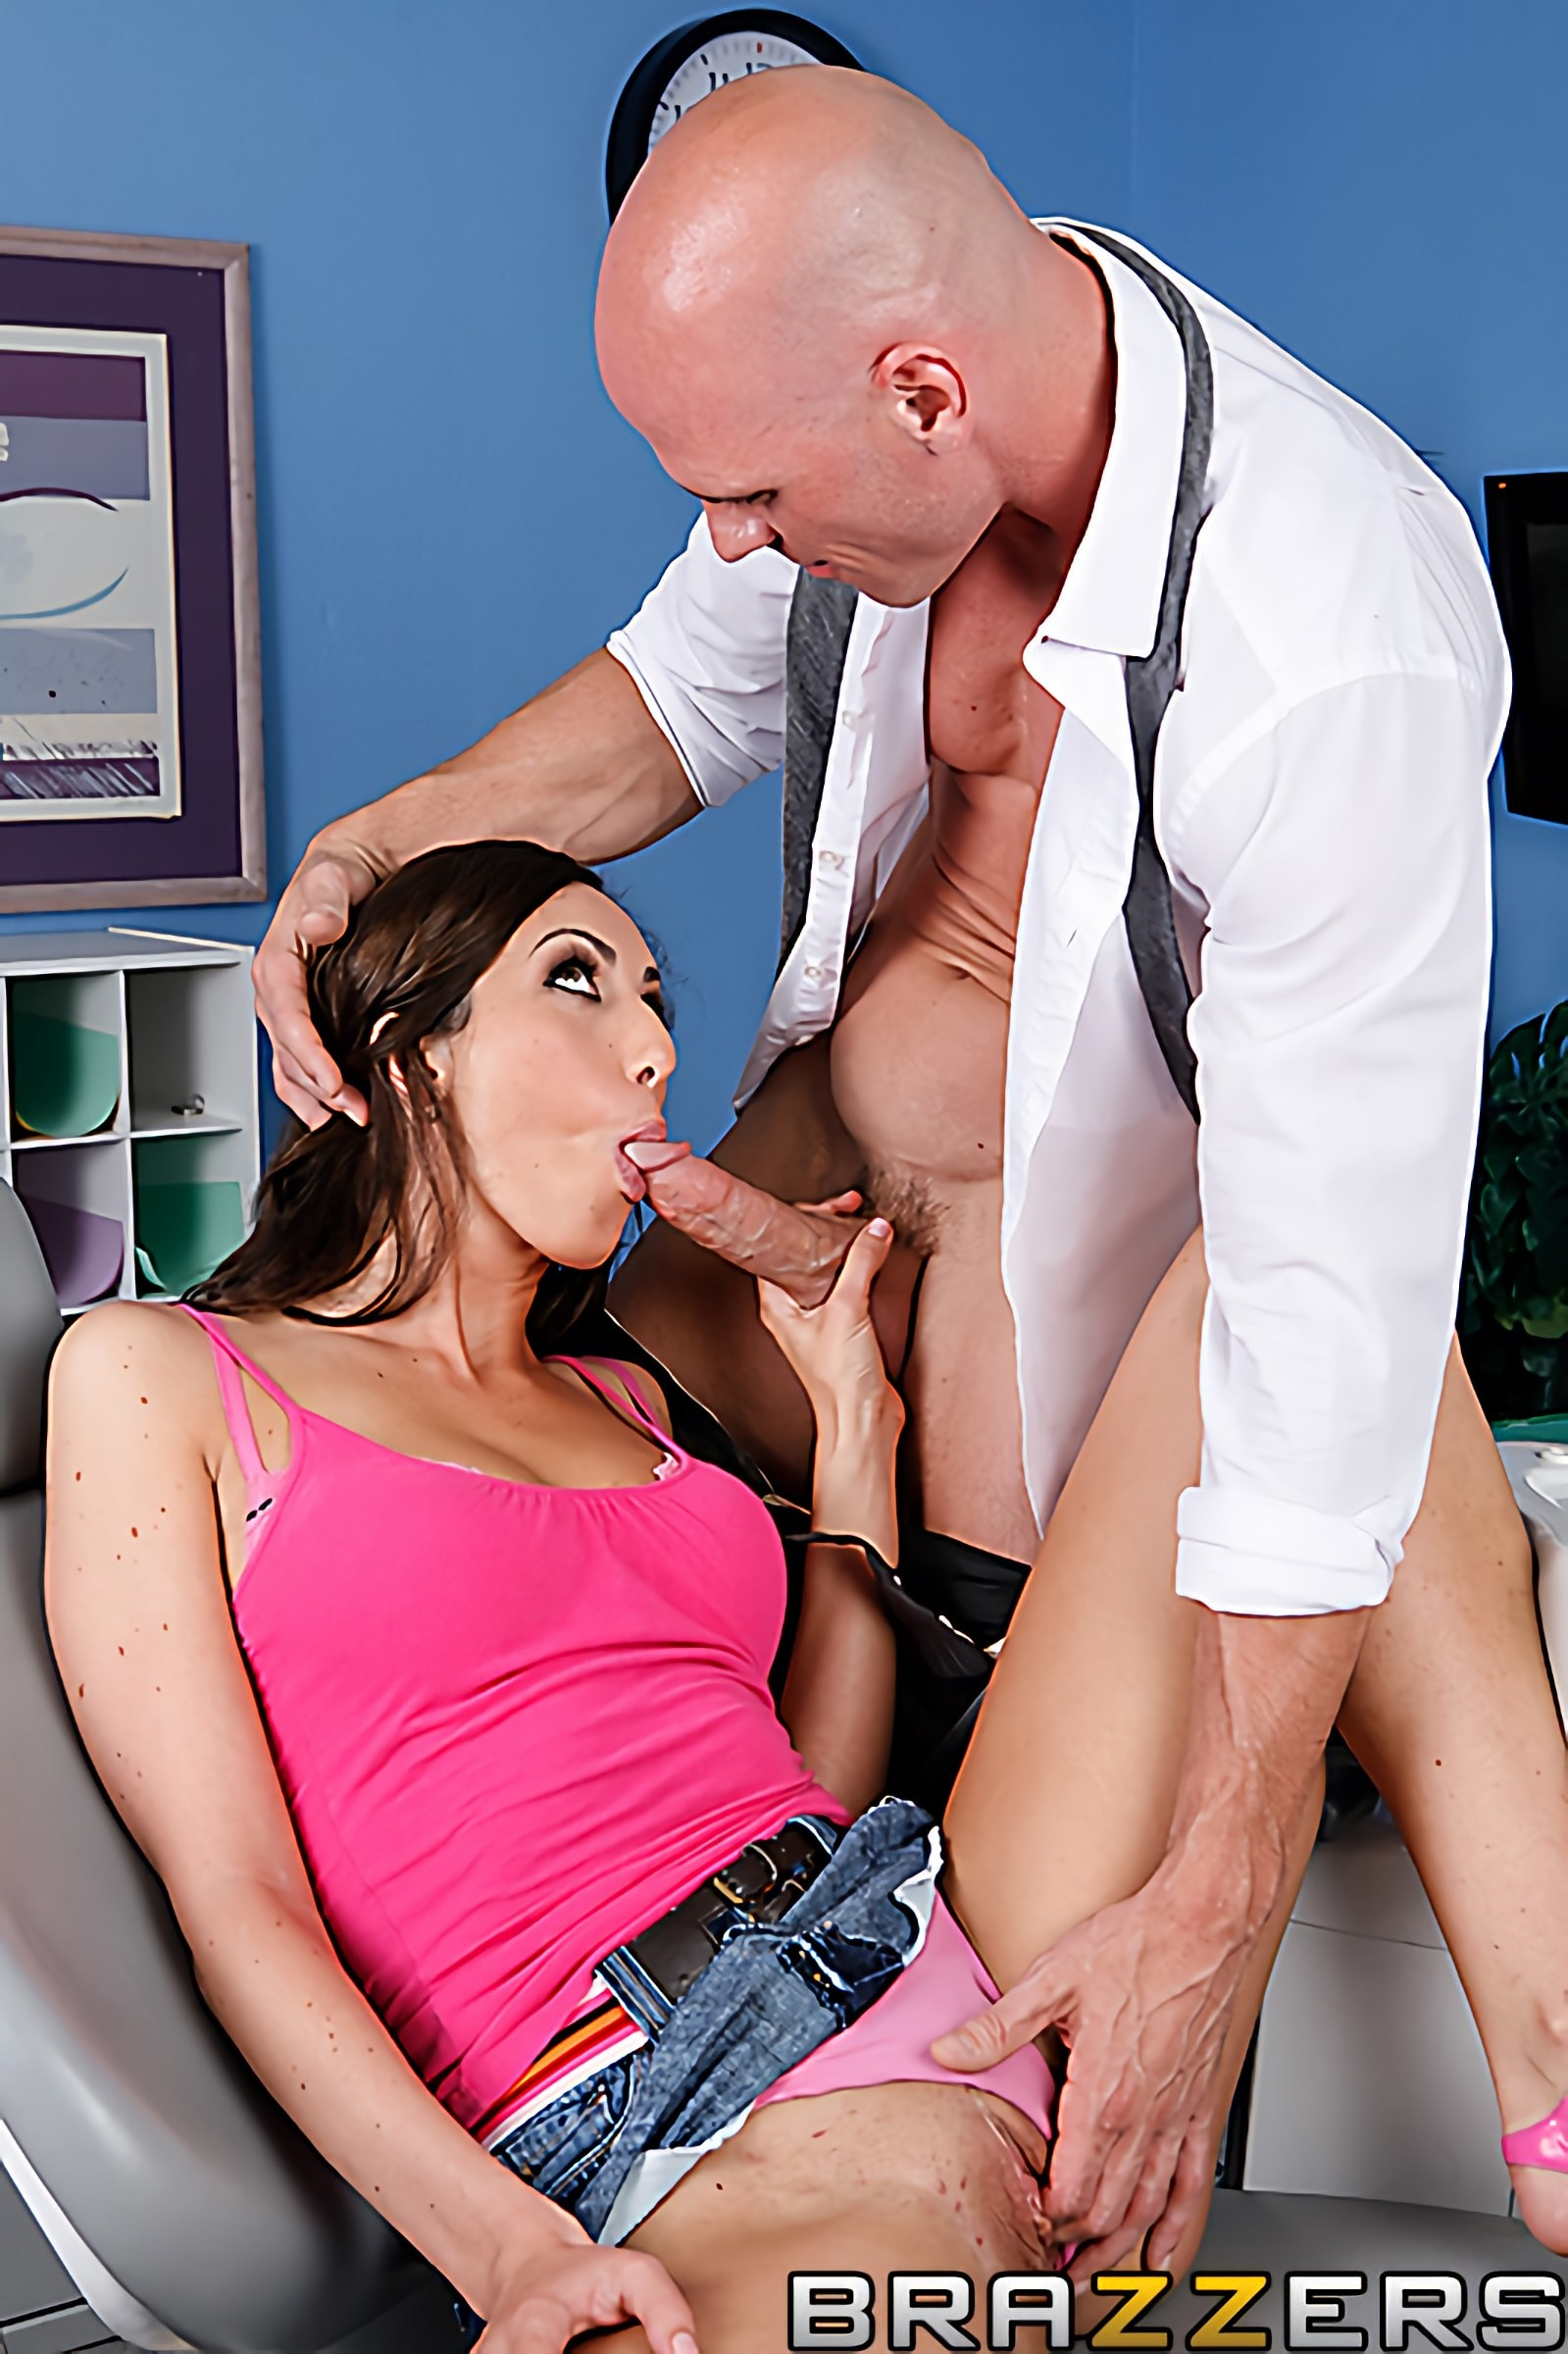 Brazzers 'Getting Dick at the Dentist' starring Angelica Saige (photo 8)